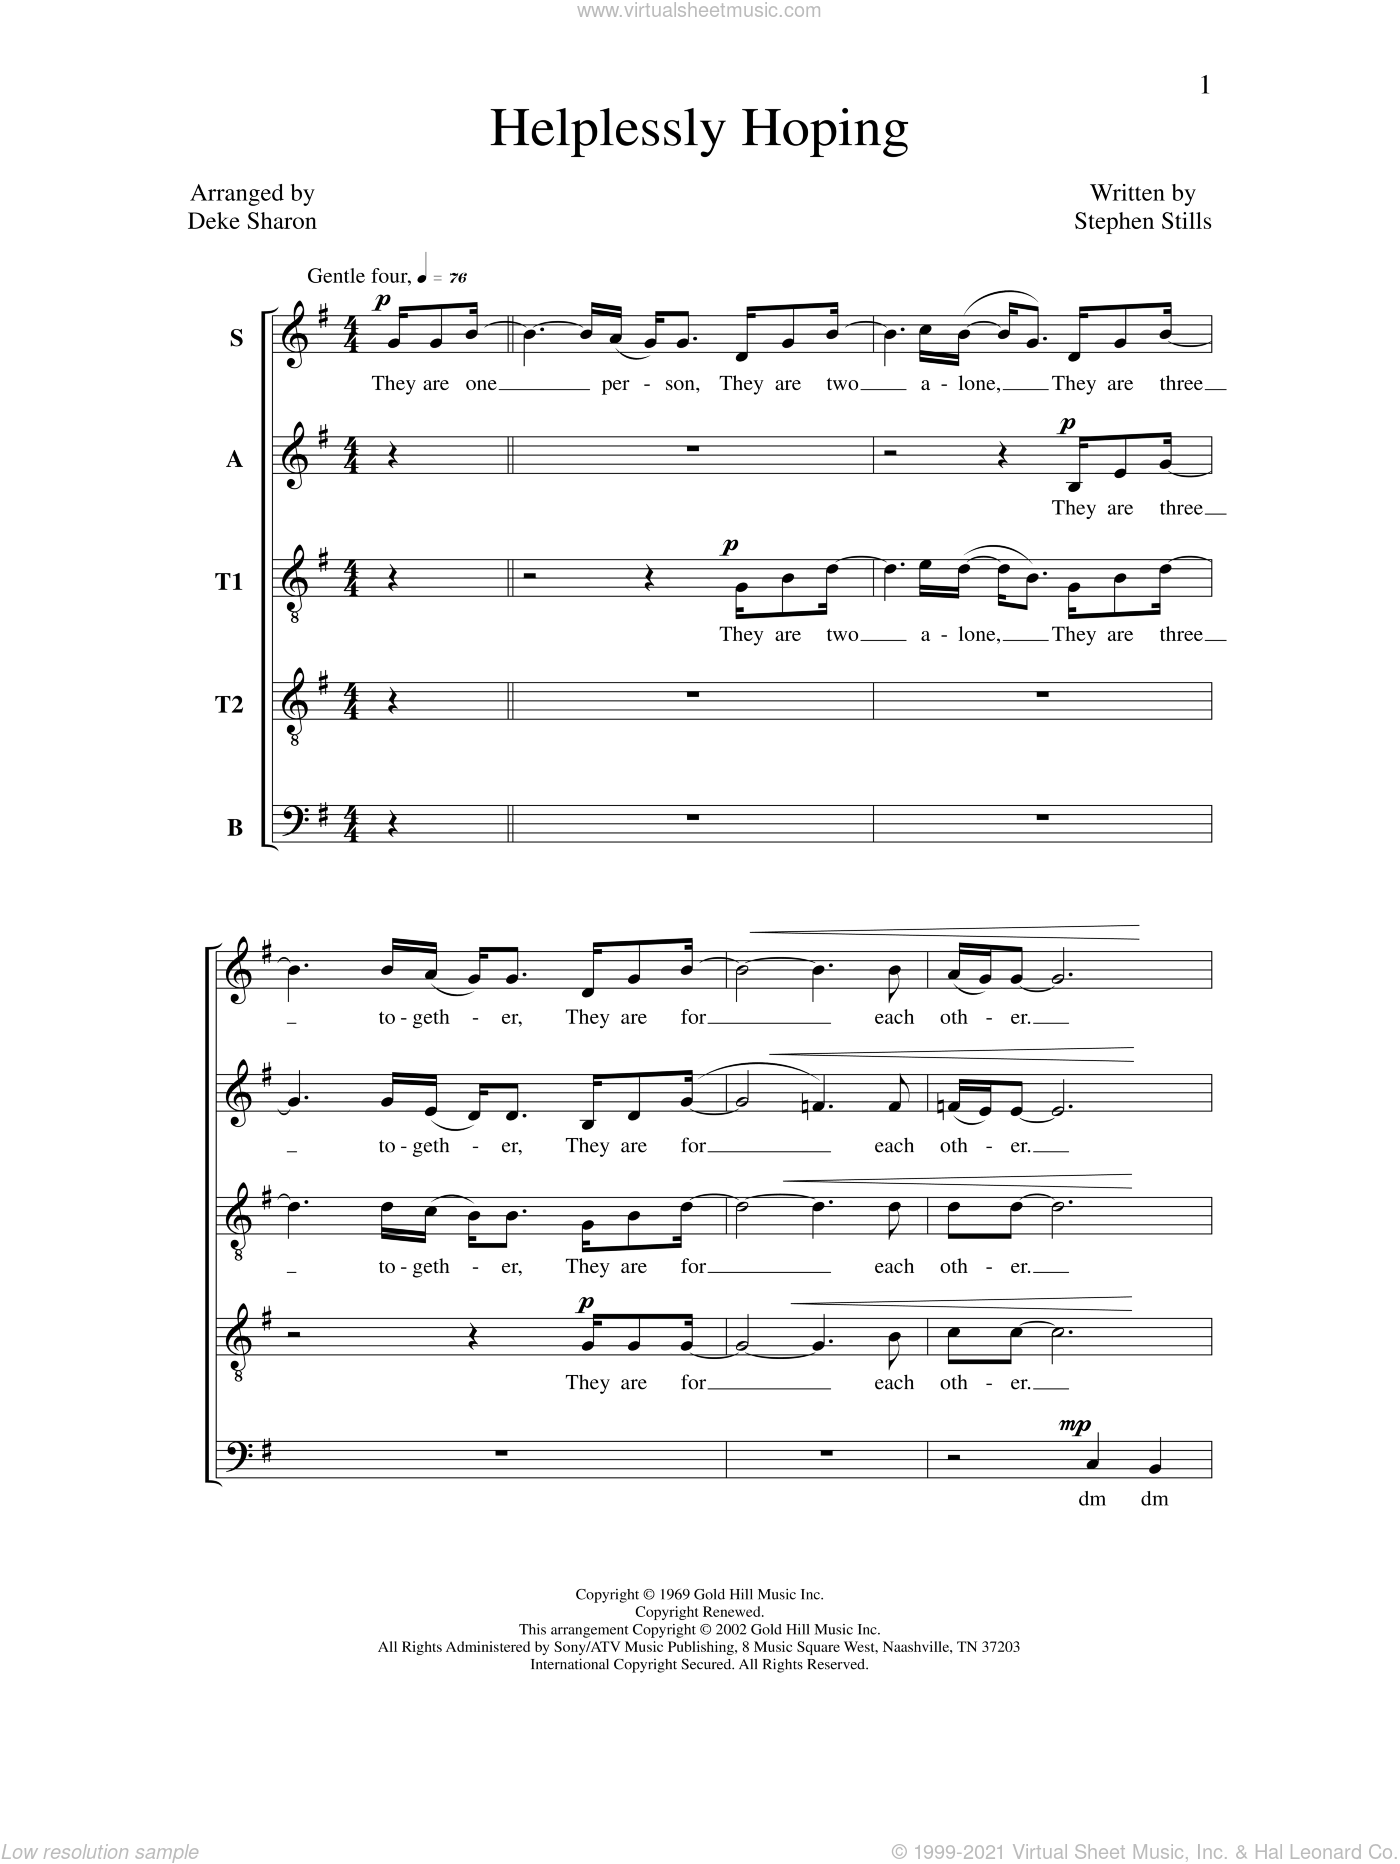 Helplessly Hoping sheet music for choir (a cappella) by Deke Sharon